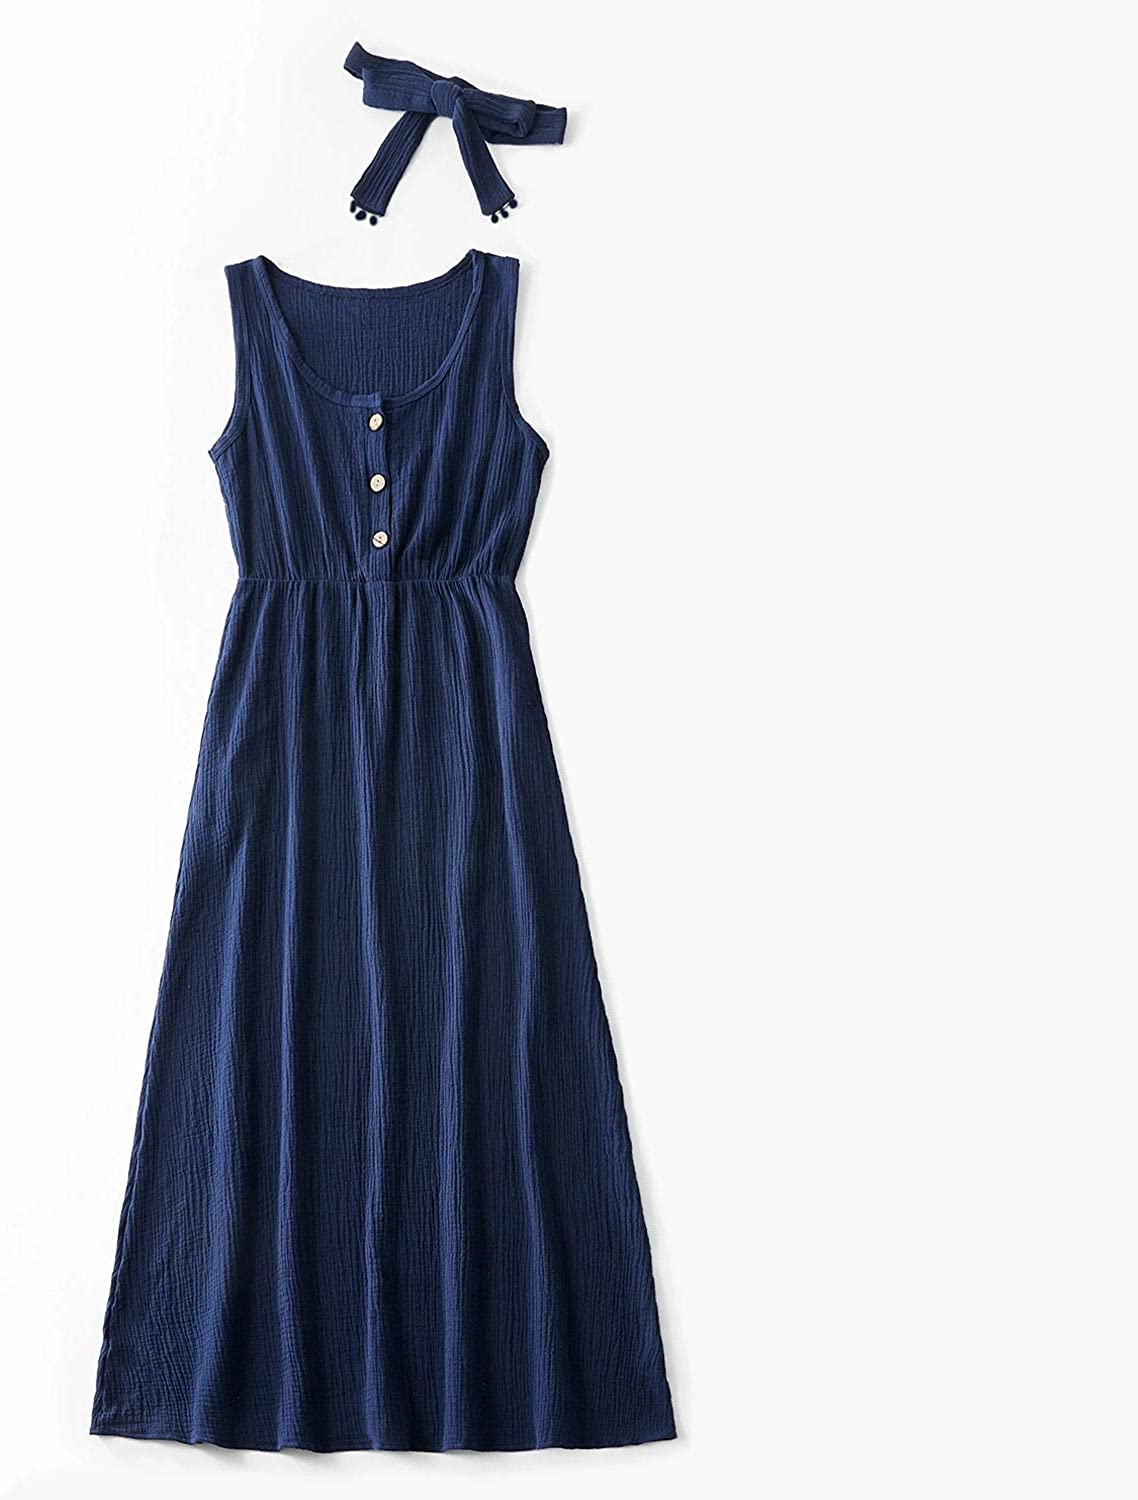 IFFEI Mommy and Me Matching Maxi Dress Sleeveless Summer Casual Cotton Dress with Headband for Mother Daughter